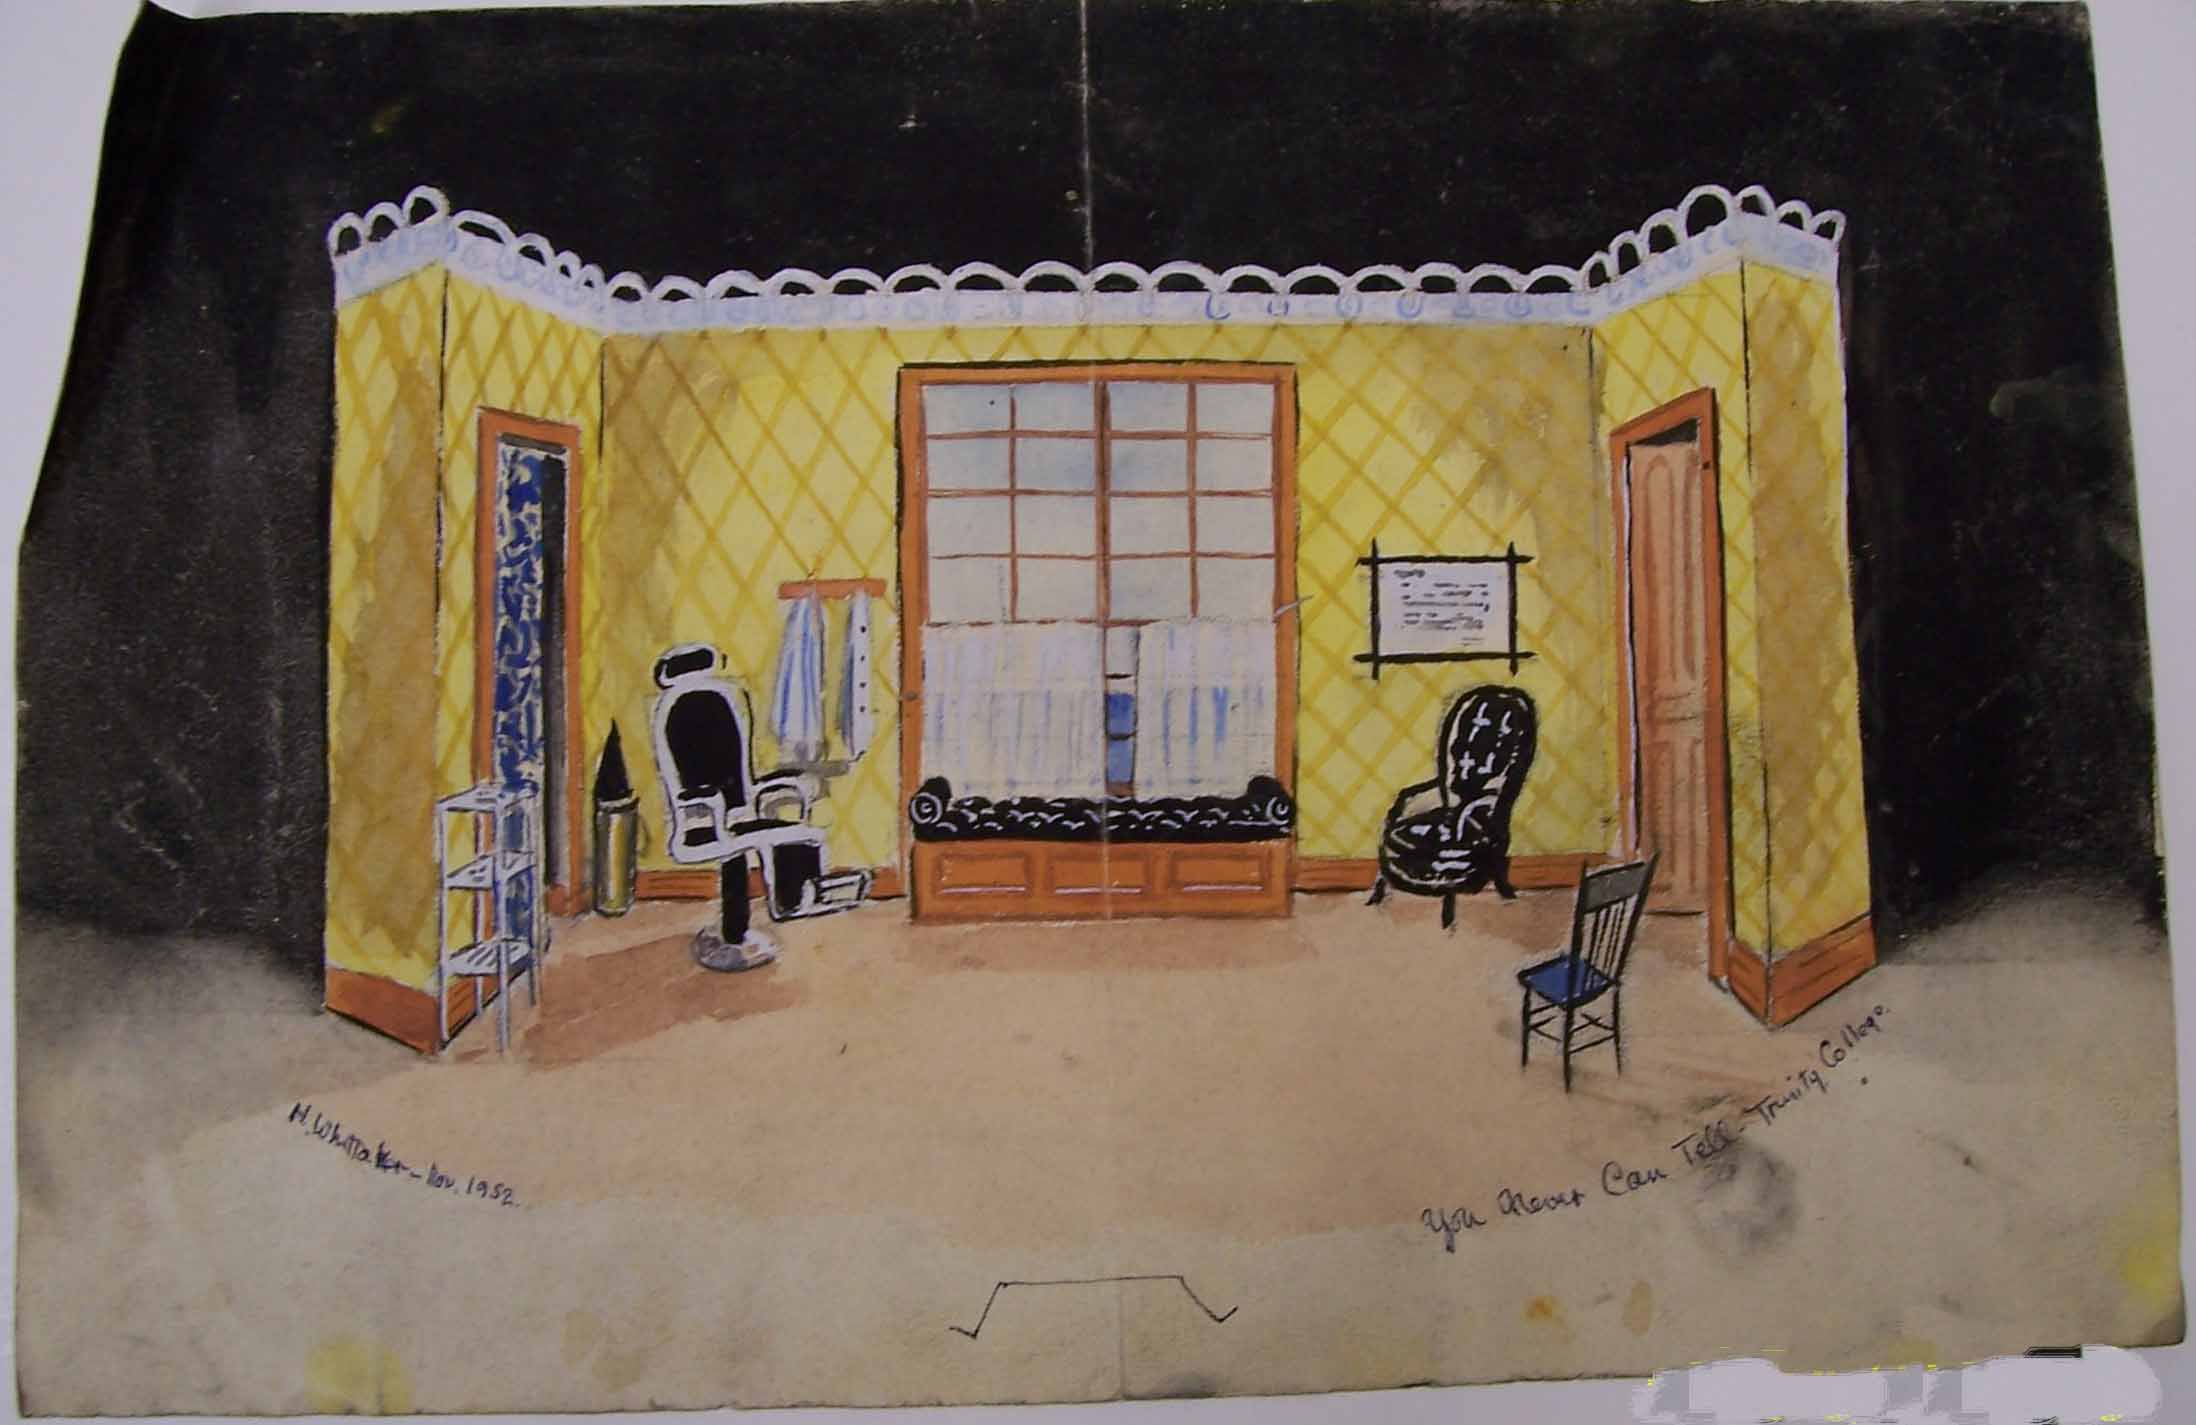 Whittaker set design for You Never Can Tell